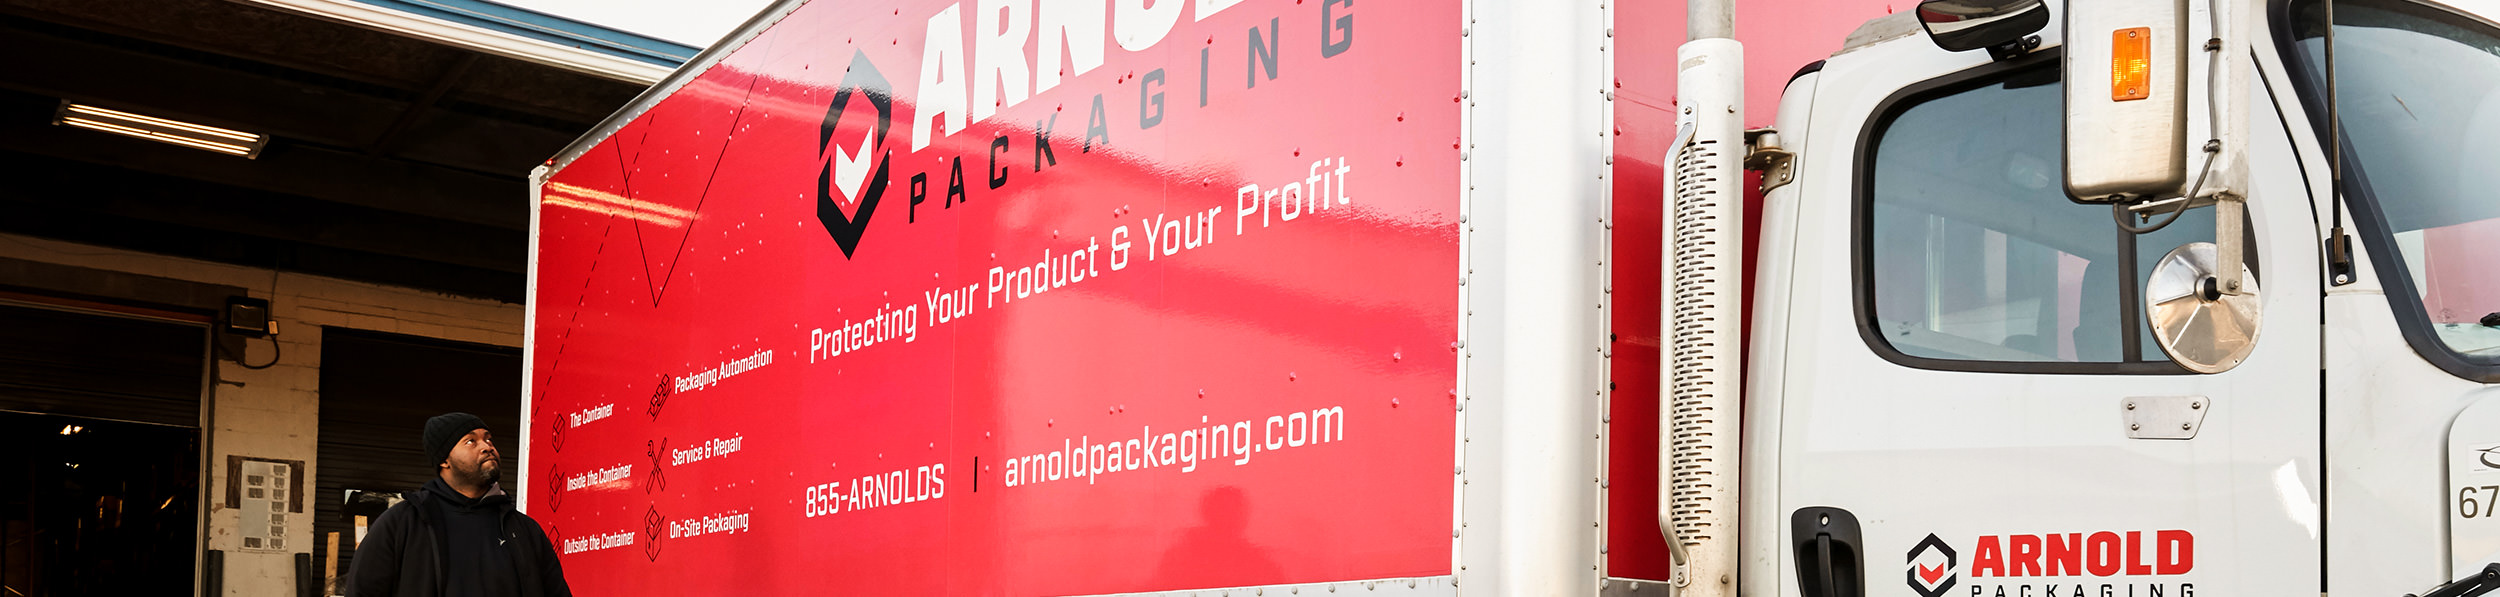 Arnold Packaging - Contact